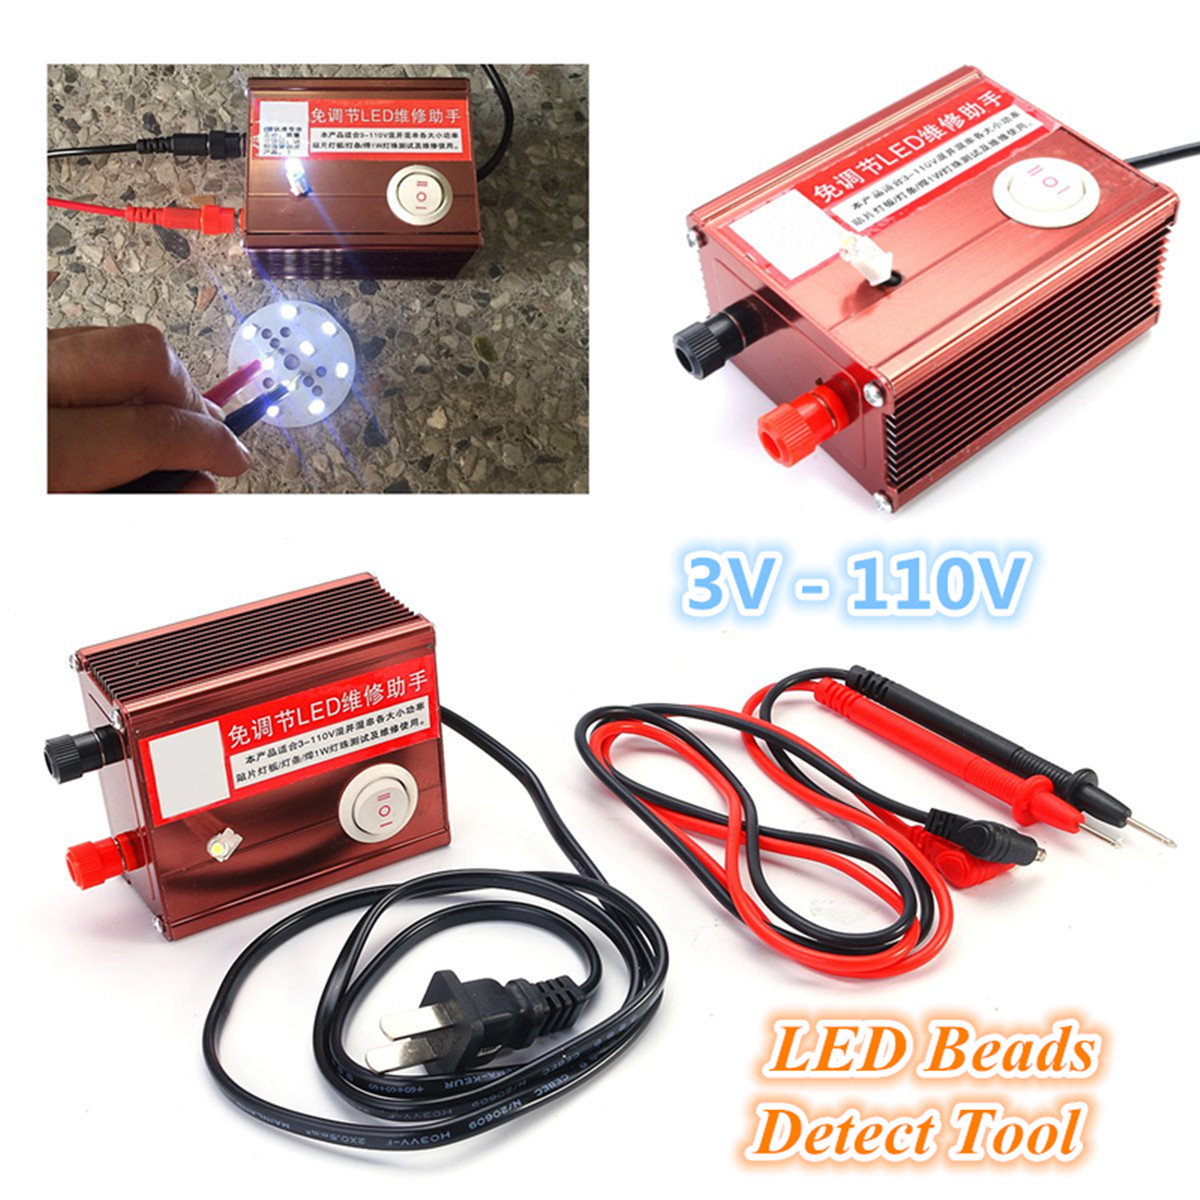 LED Lamp Backlight Tester LED Beads Detect Repair Tool LED Strips TV Monitor Laptop Detect